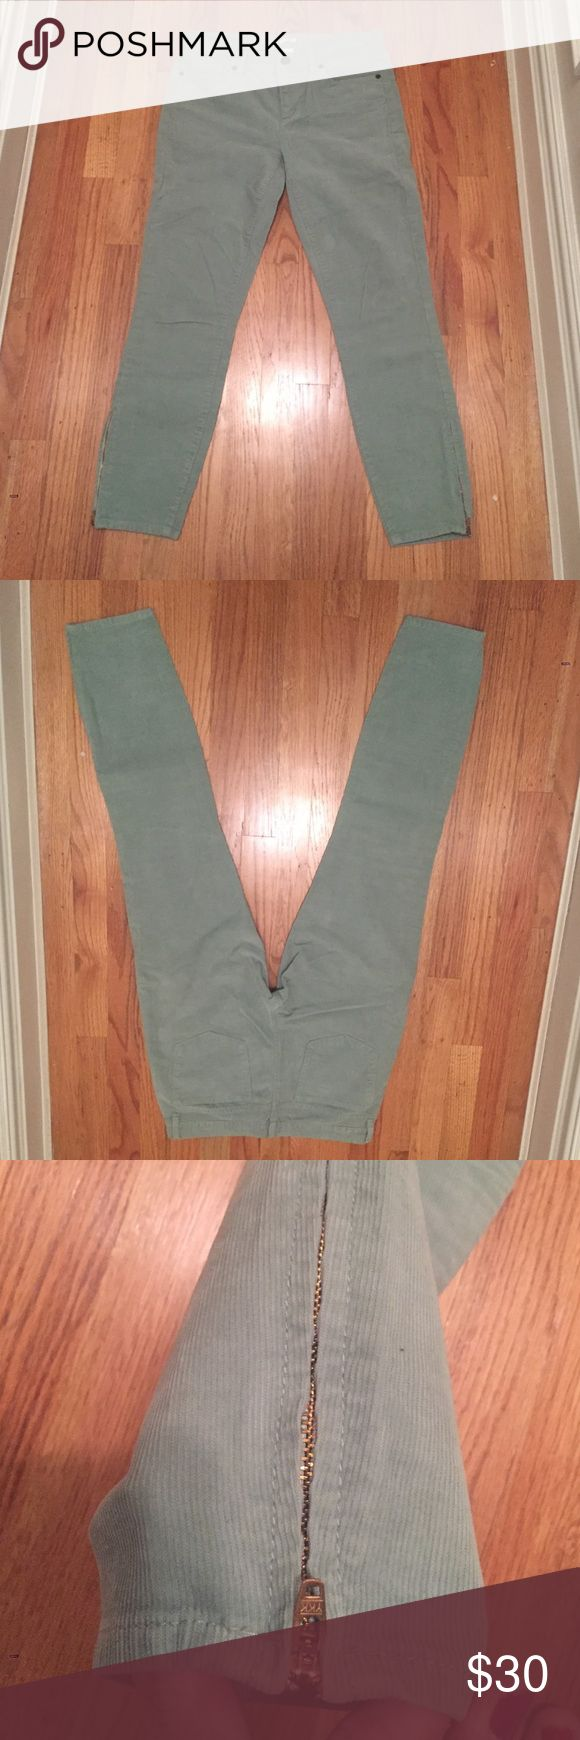 JCREW mint green corduroy pants J. Crew mint green corduroy pants. Only worn a few times and are in excellent condition. J. Crew Pants Ankle & Cropped